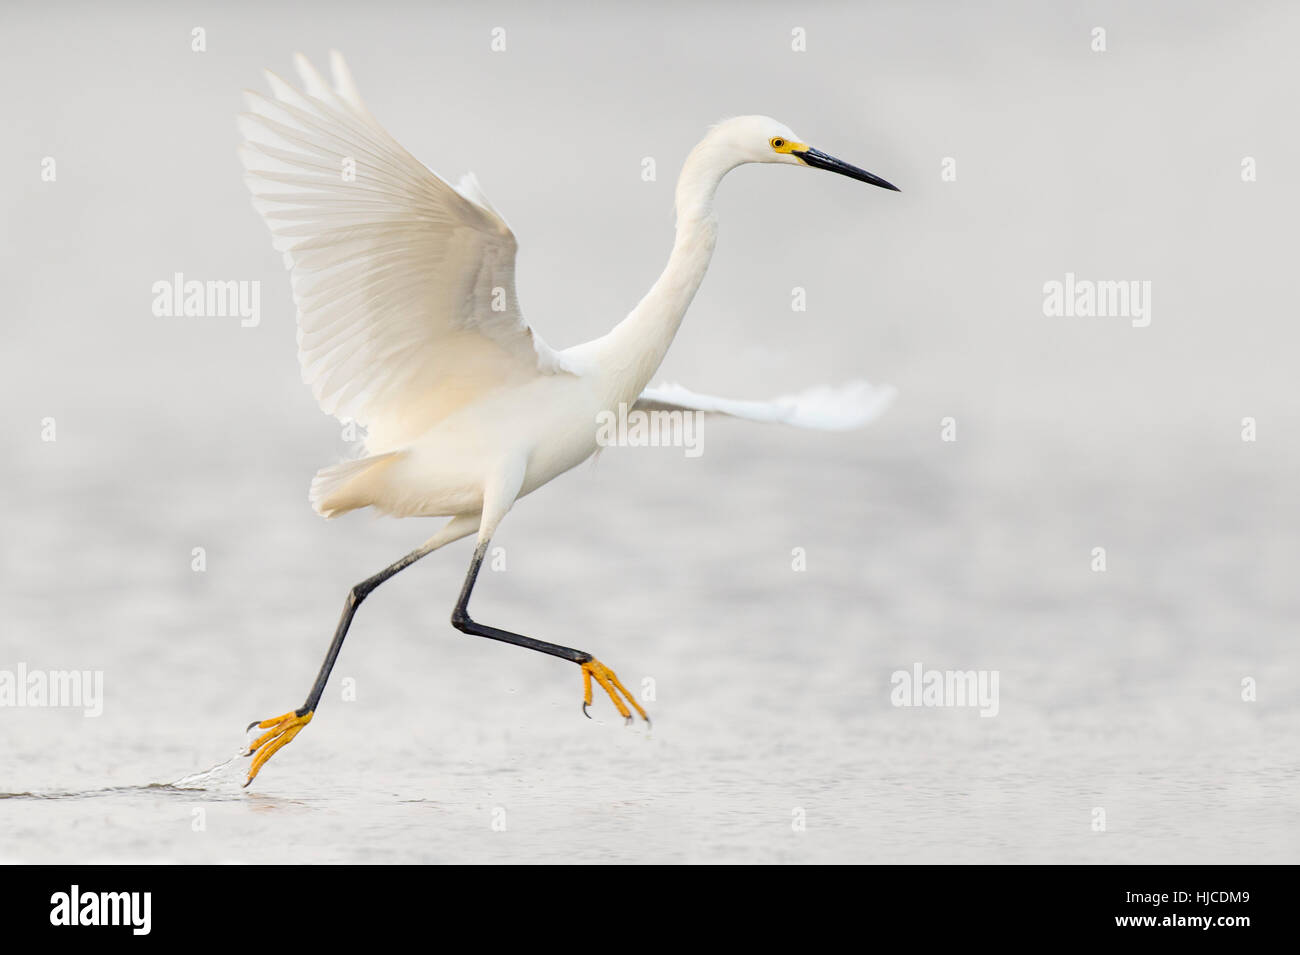 A Snowy Egret jumps and flaps around as it searches for food in the shallow water on an overcast day. Stock Photo